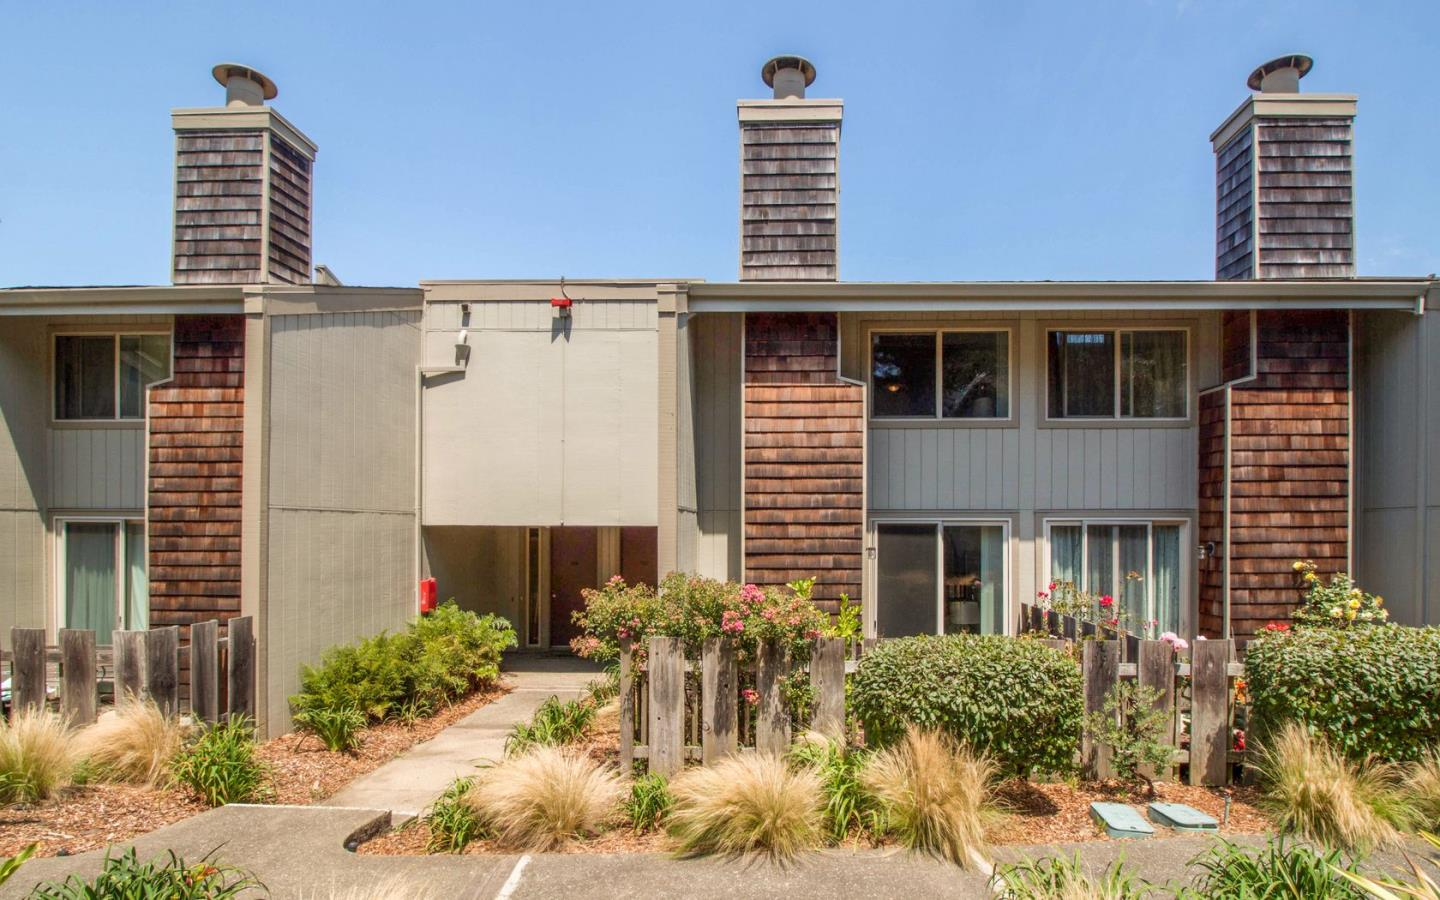 Additional photo for property listing at 326 Philip Drive  Daly City, Kalifornien 94015 Vereinigte Staaten